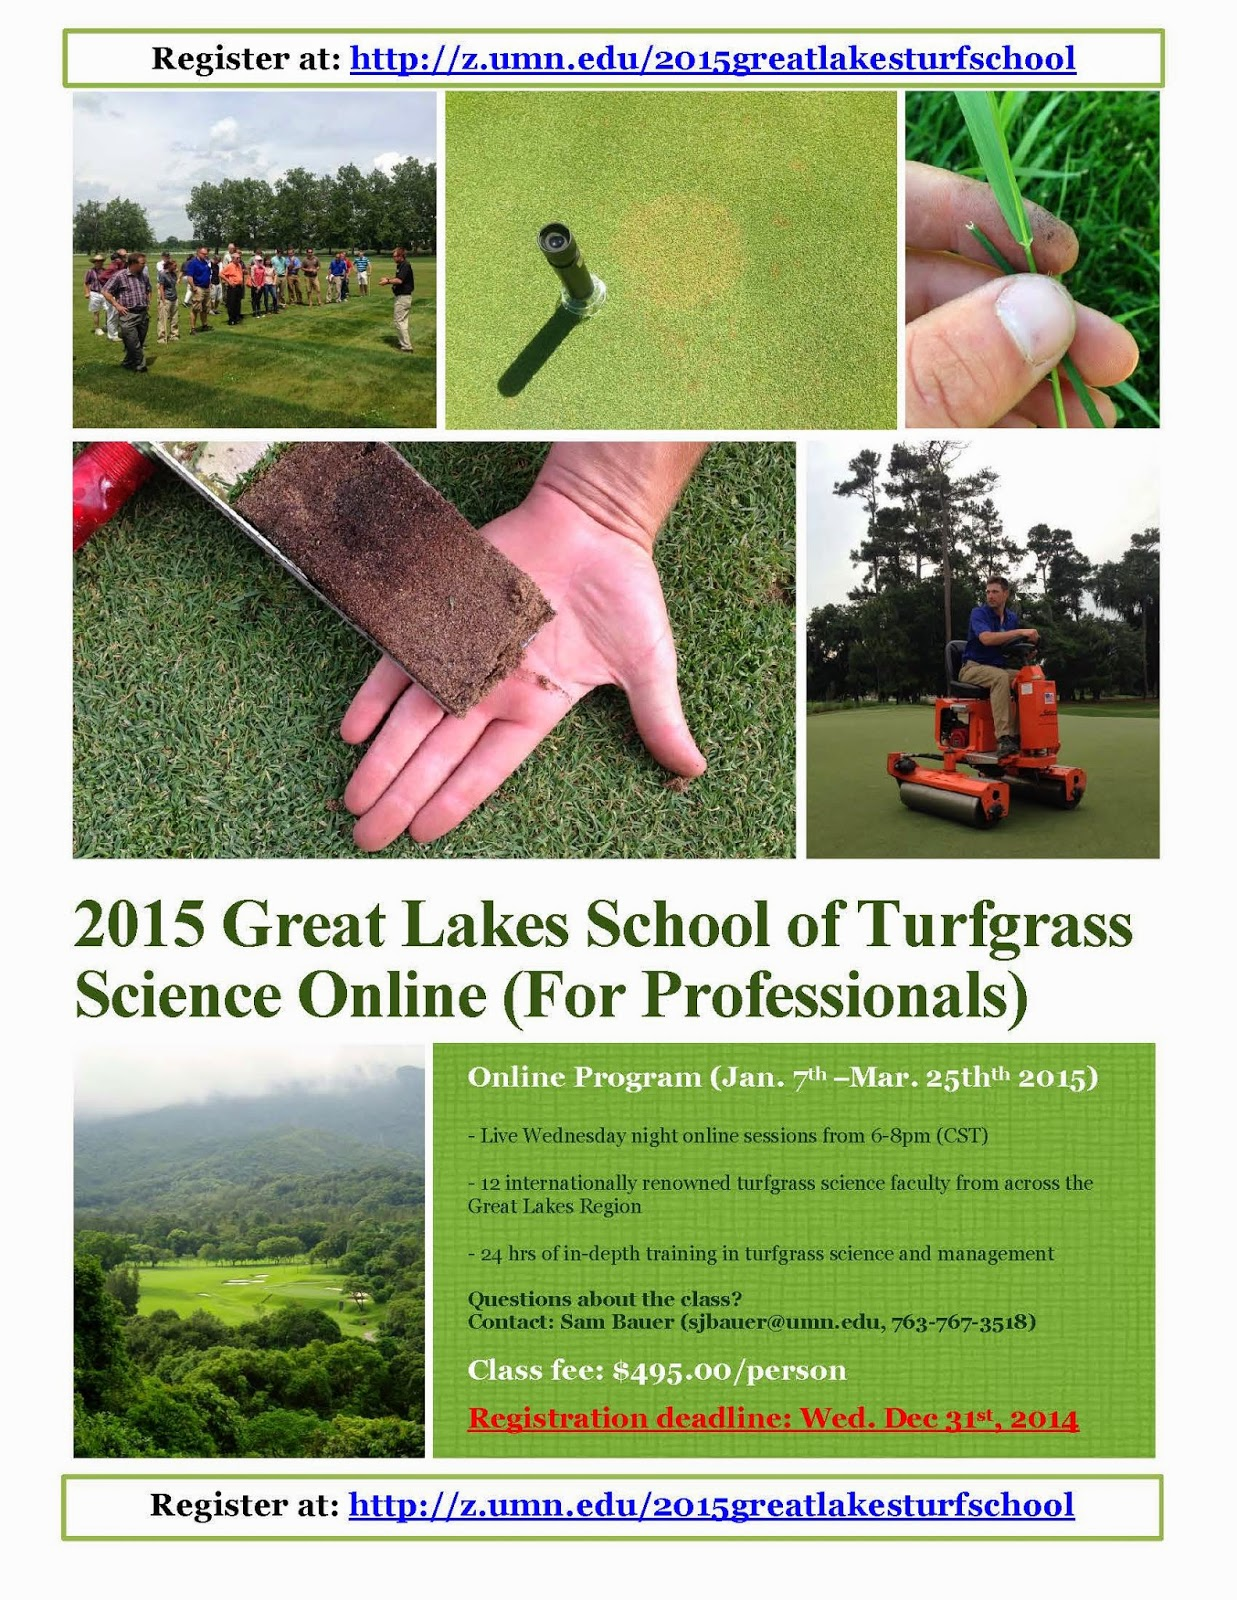 http://z.umn.edu/2015greatlakesturfschool